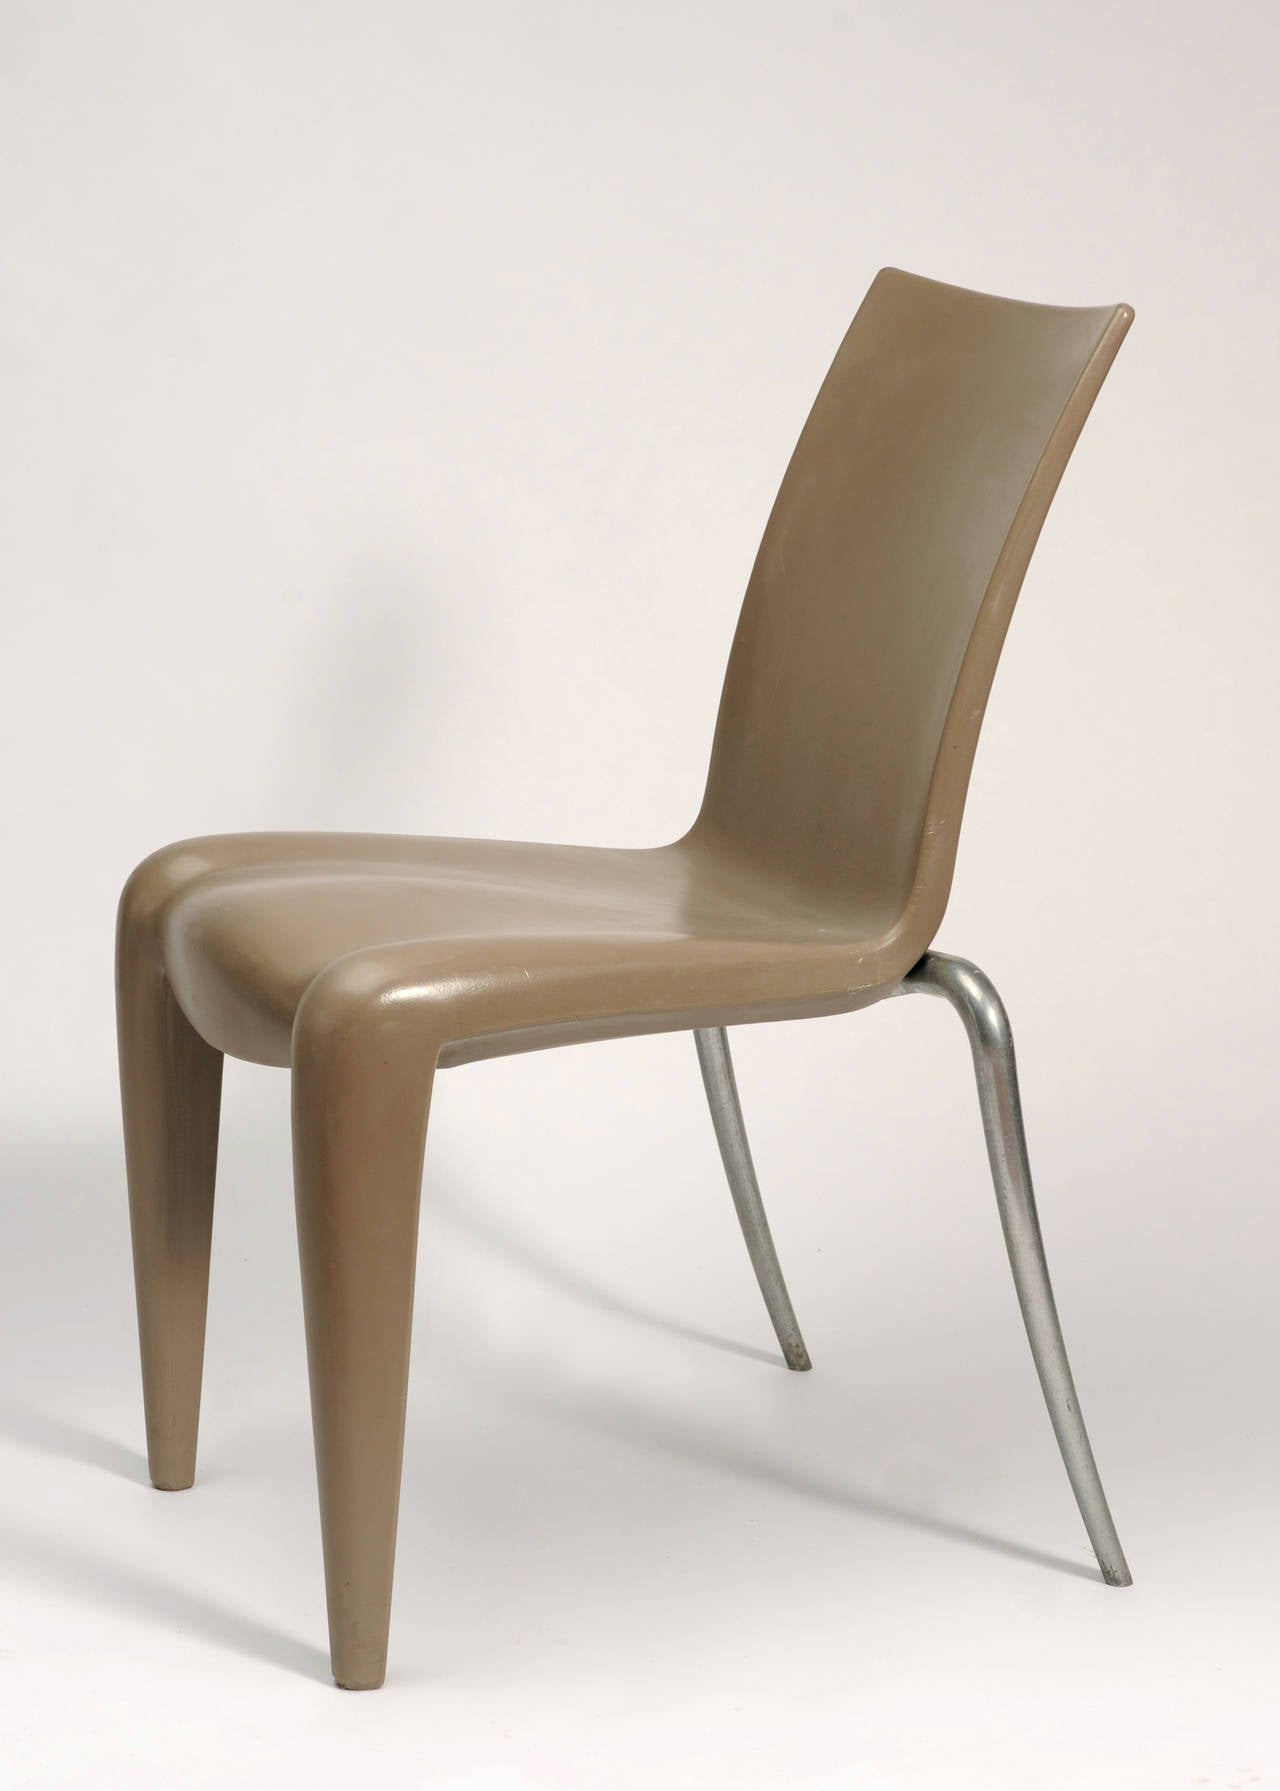 set of eight philippe starck louis xx chairs for sale at stdibs - set of eight philippe starck louis xx chairs